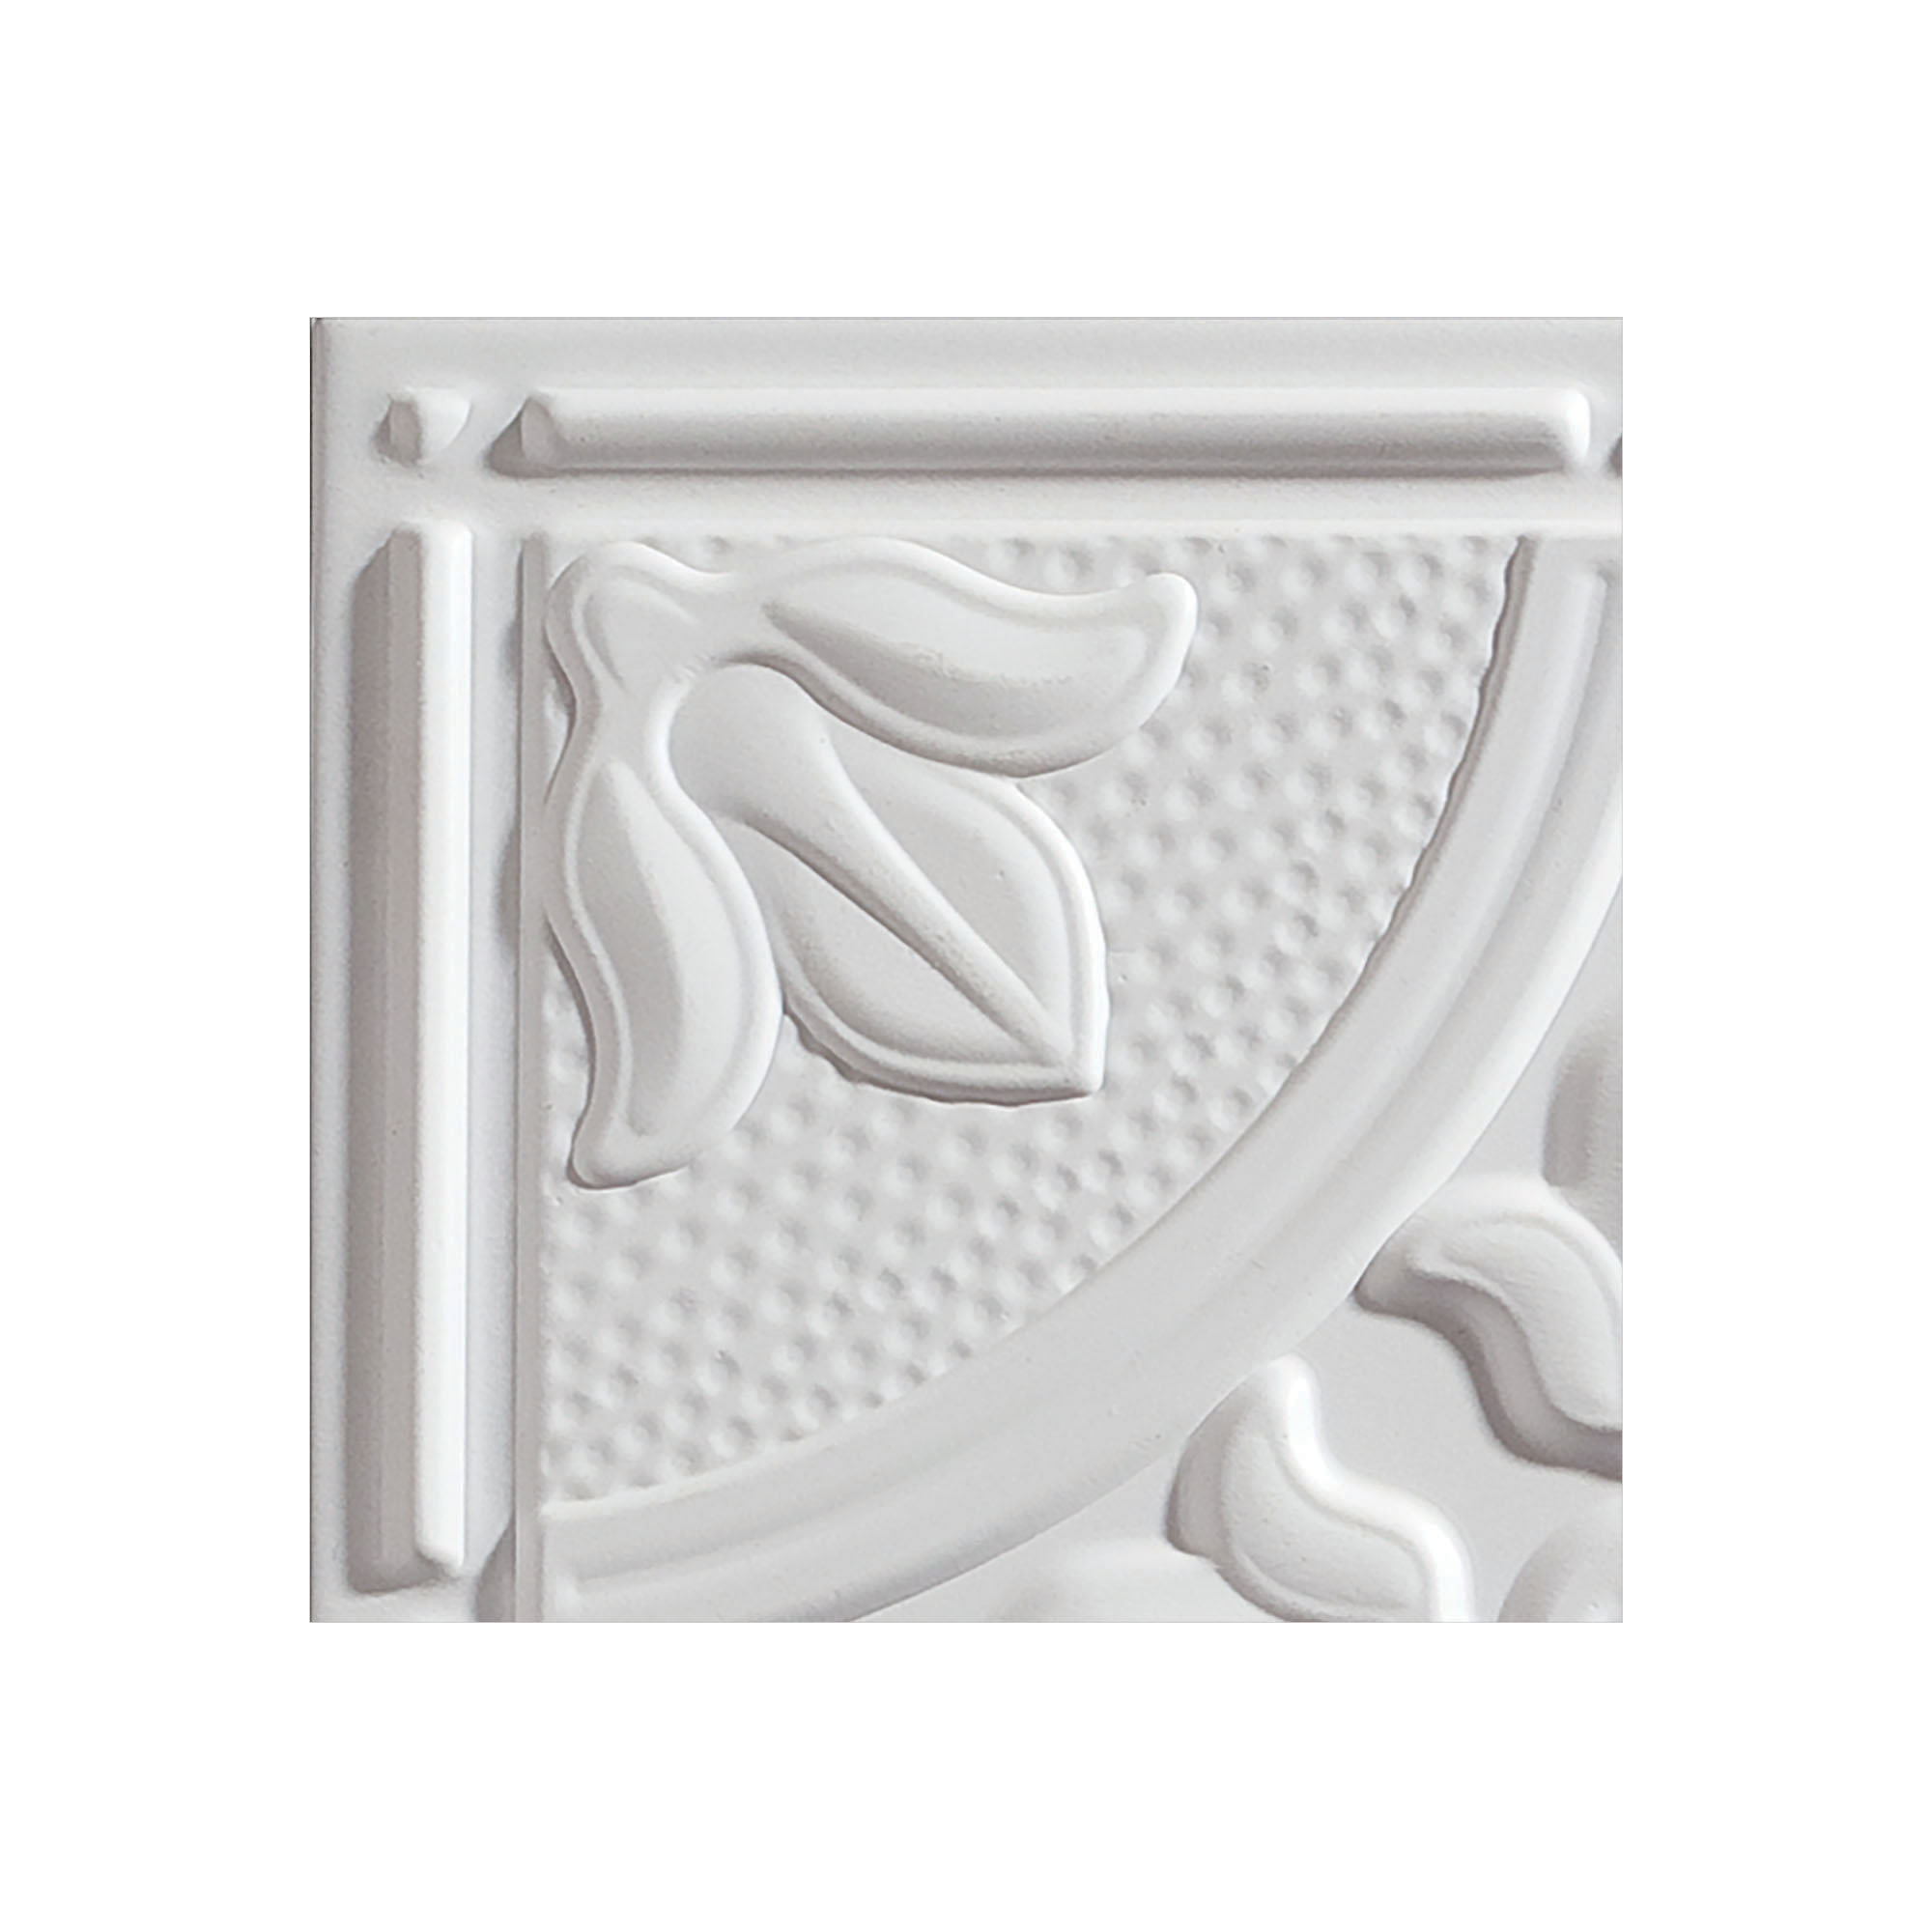 genesis antique white ceiling tiles easy drop in installation waterproof washable and fire rated high grade pvc to prevent breakage 12 x 12